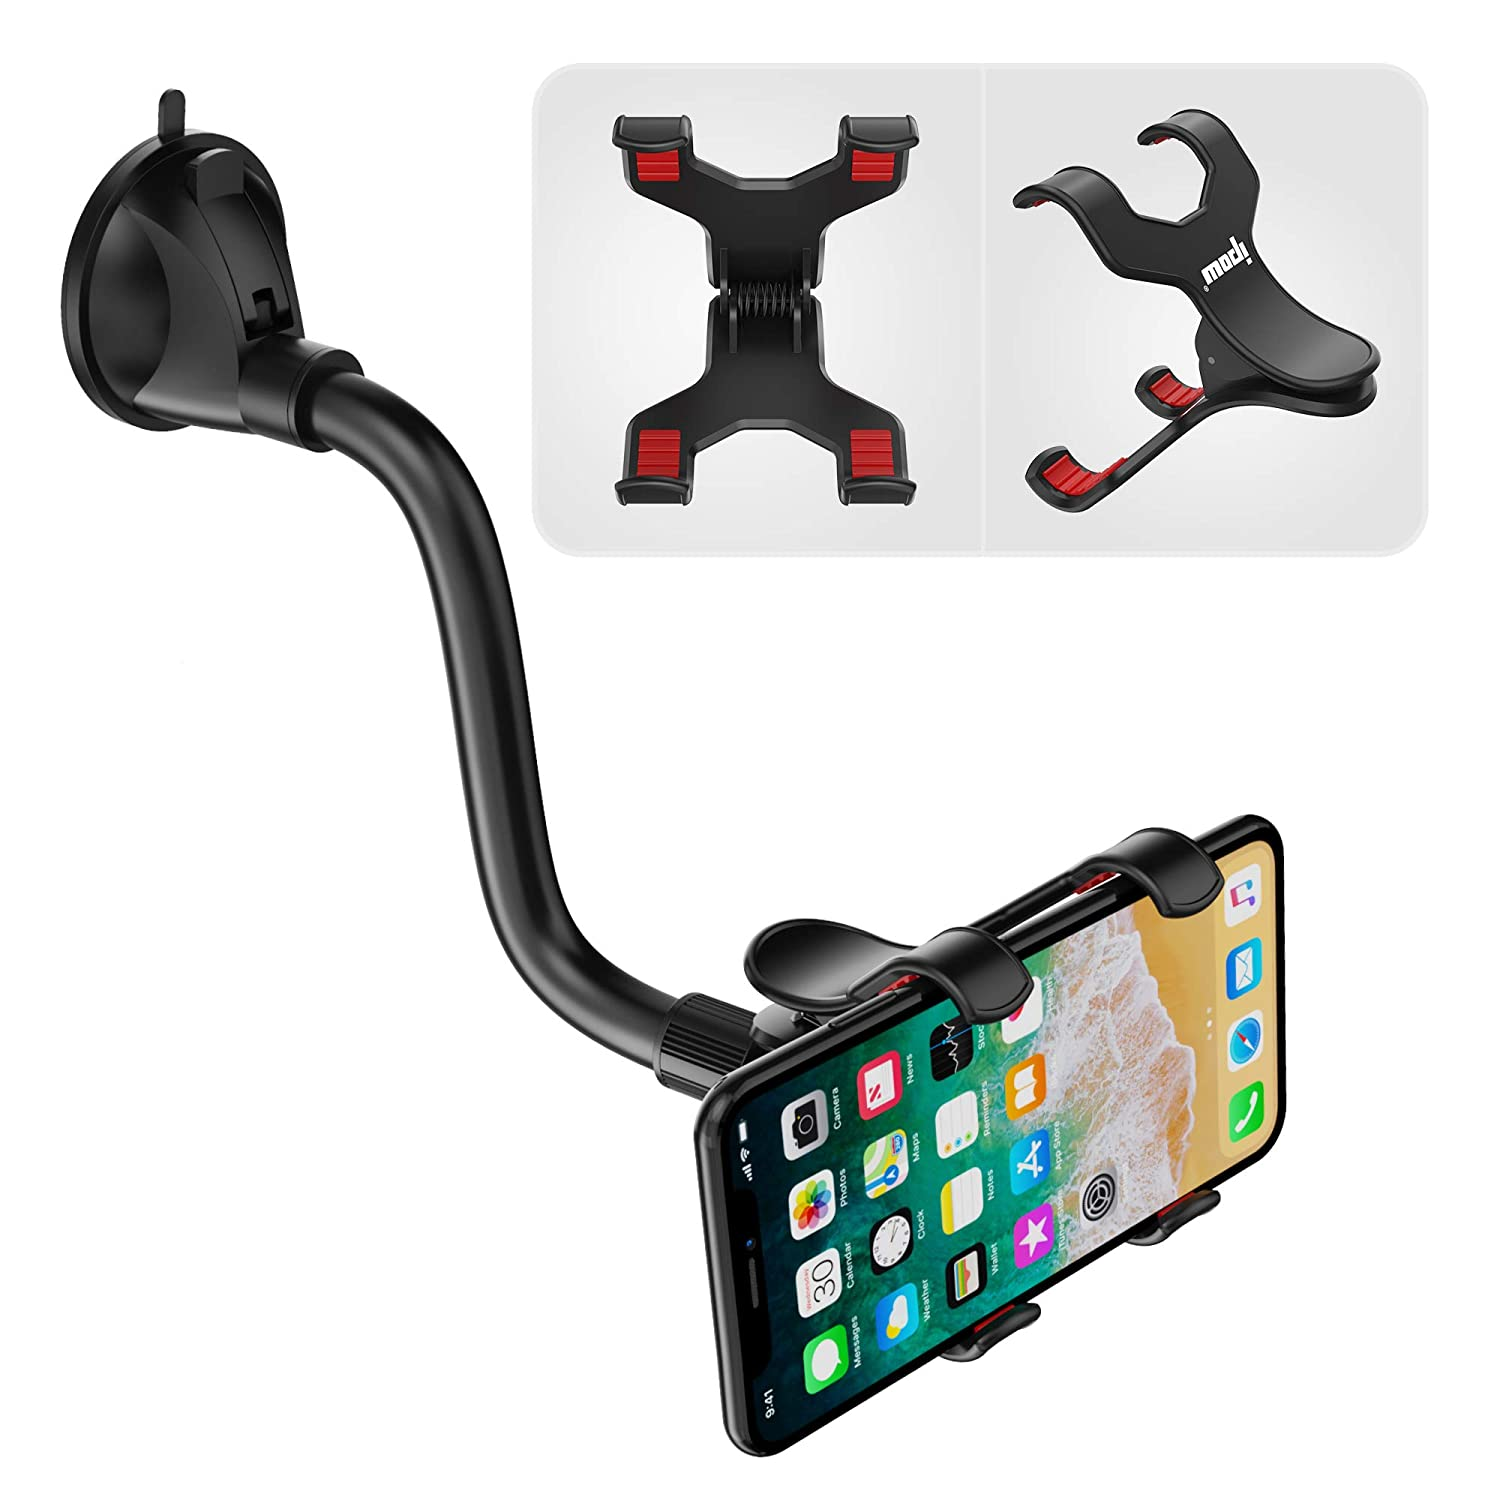 IPOW Car Phone Mount Windshield with X-Shaped Clamp Fits Thick/Irregular Phone Case,Long Arm Cell Phone Holder for Car with Strong Suction 4351536357